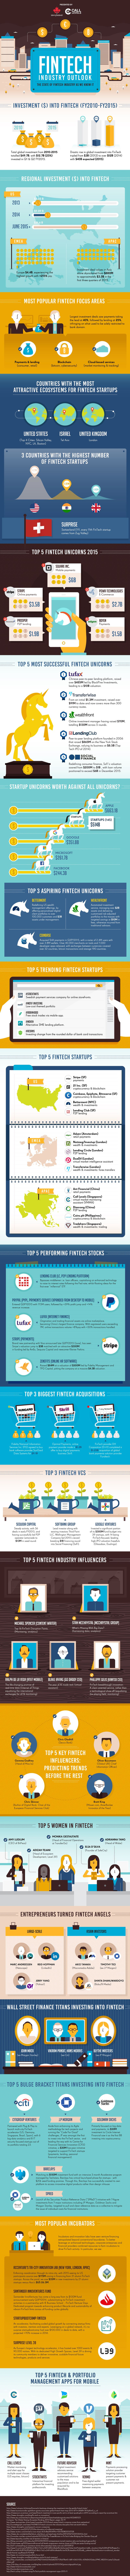 The State of FinTech industry as We Know It #infographic